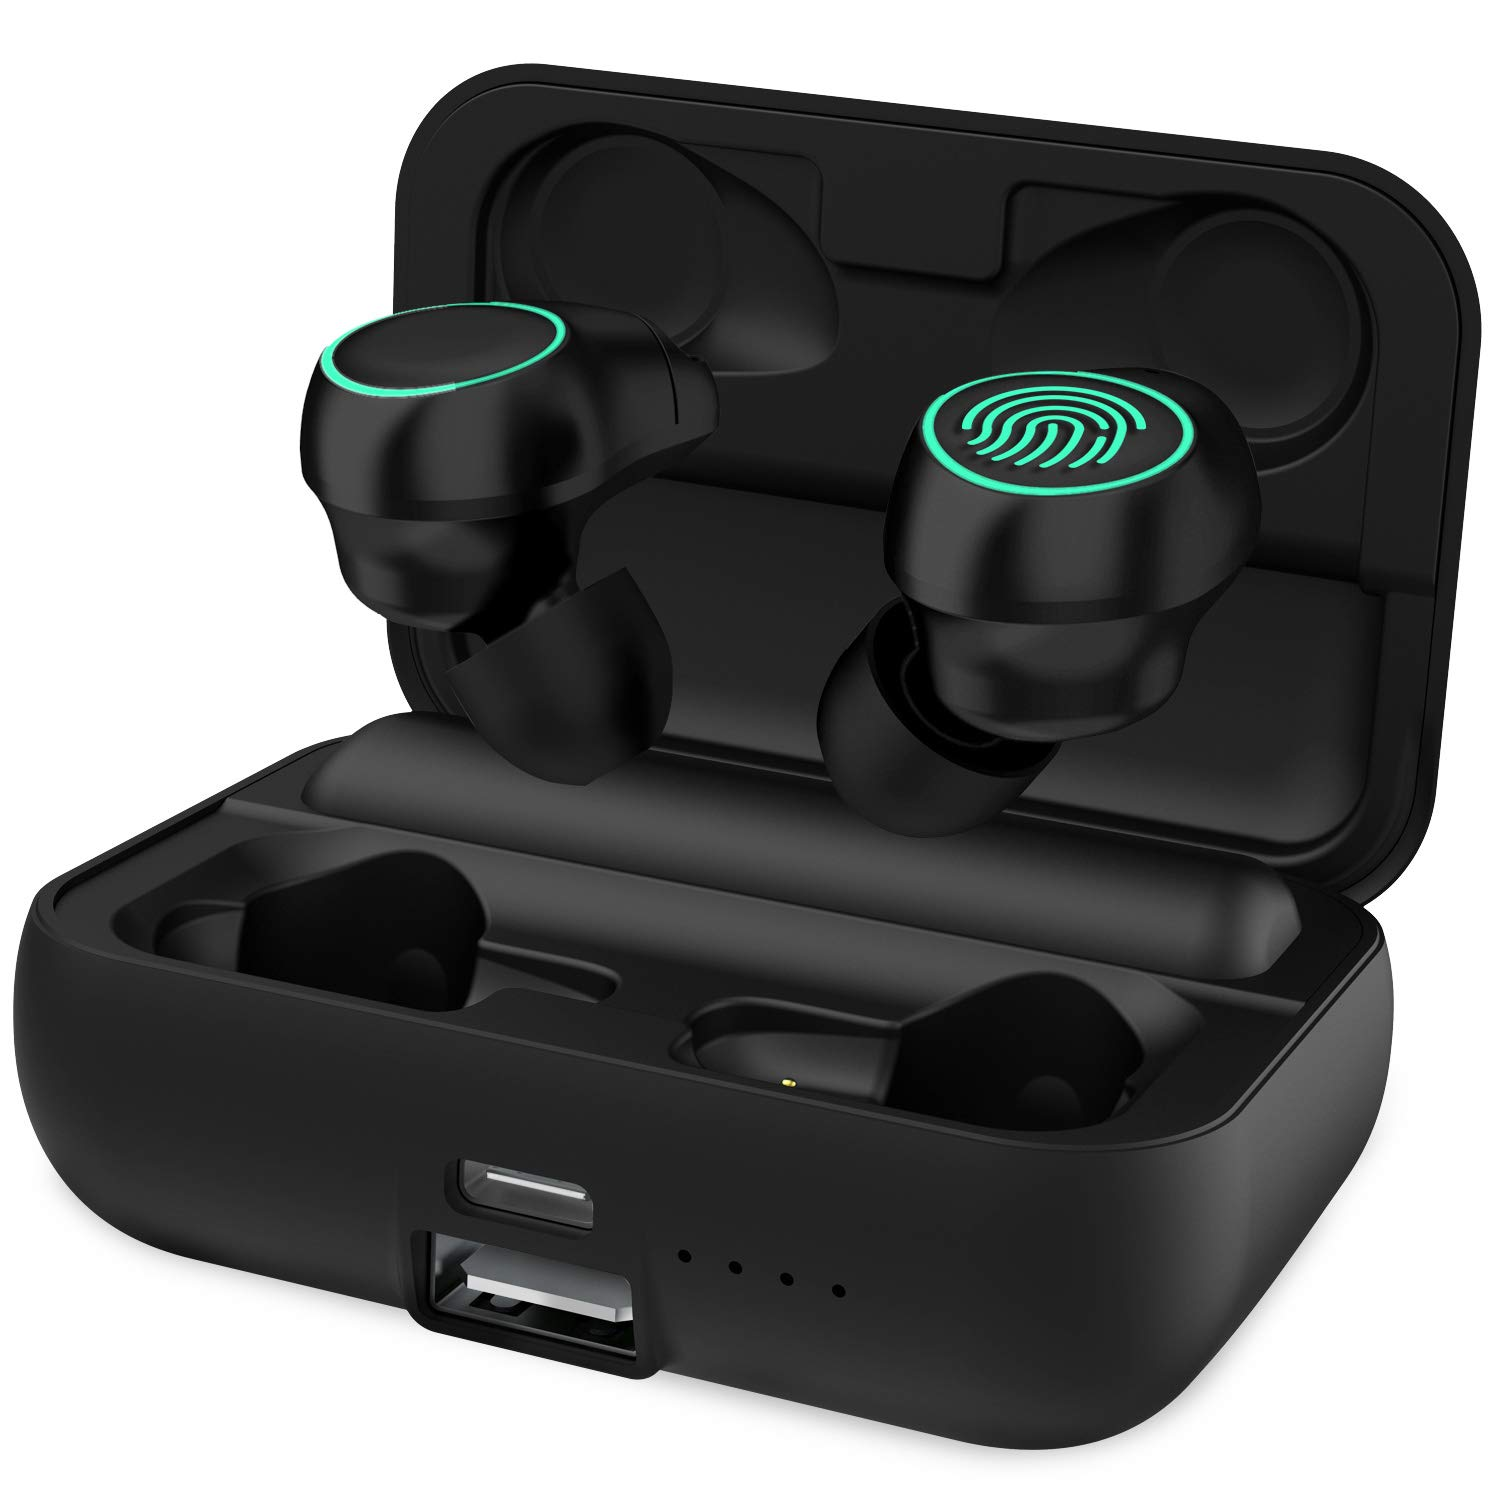 HolyHigh True Wireless Stereo Bluetooth 5.0 Earbuds with 3000mAH Charging Case,120H Playtime Deep Bass Noise Cancellation Waterproof Earphones, in-Ear Headphones with Built-in Mic for iPhone Android